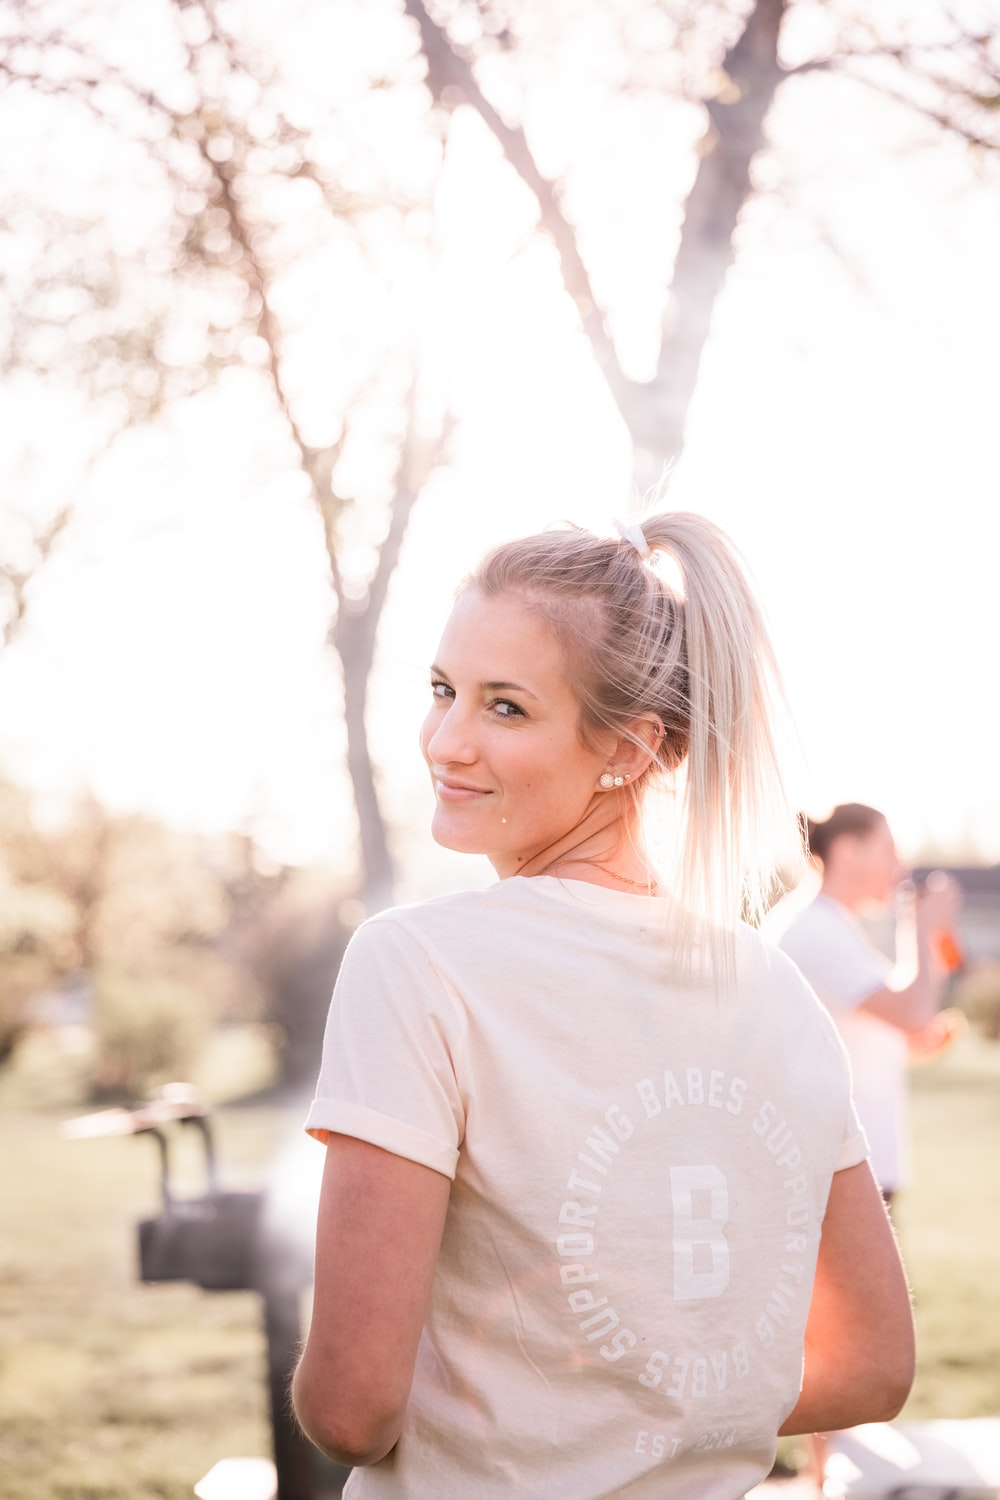 girl in white crew neck t-shirt standing near people during daytime